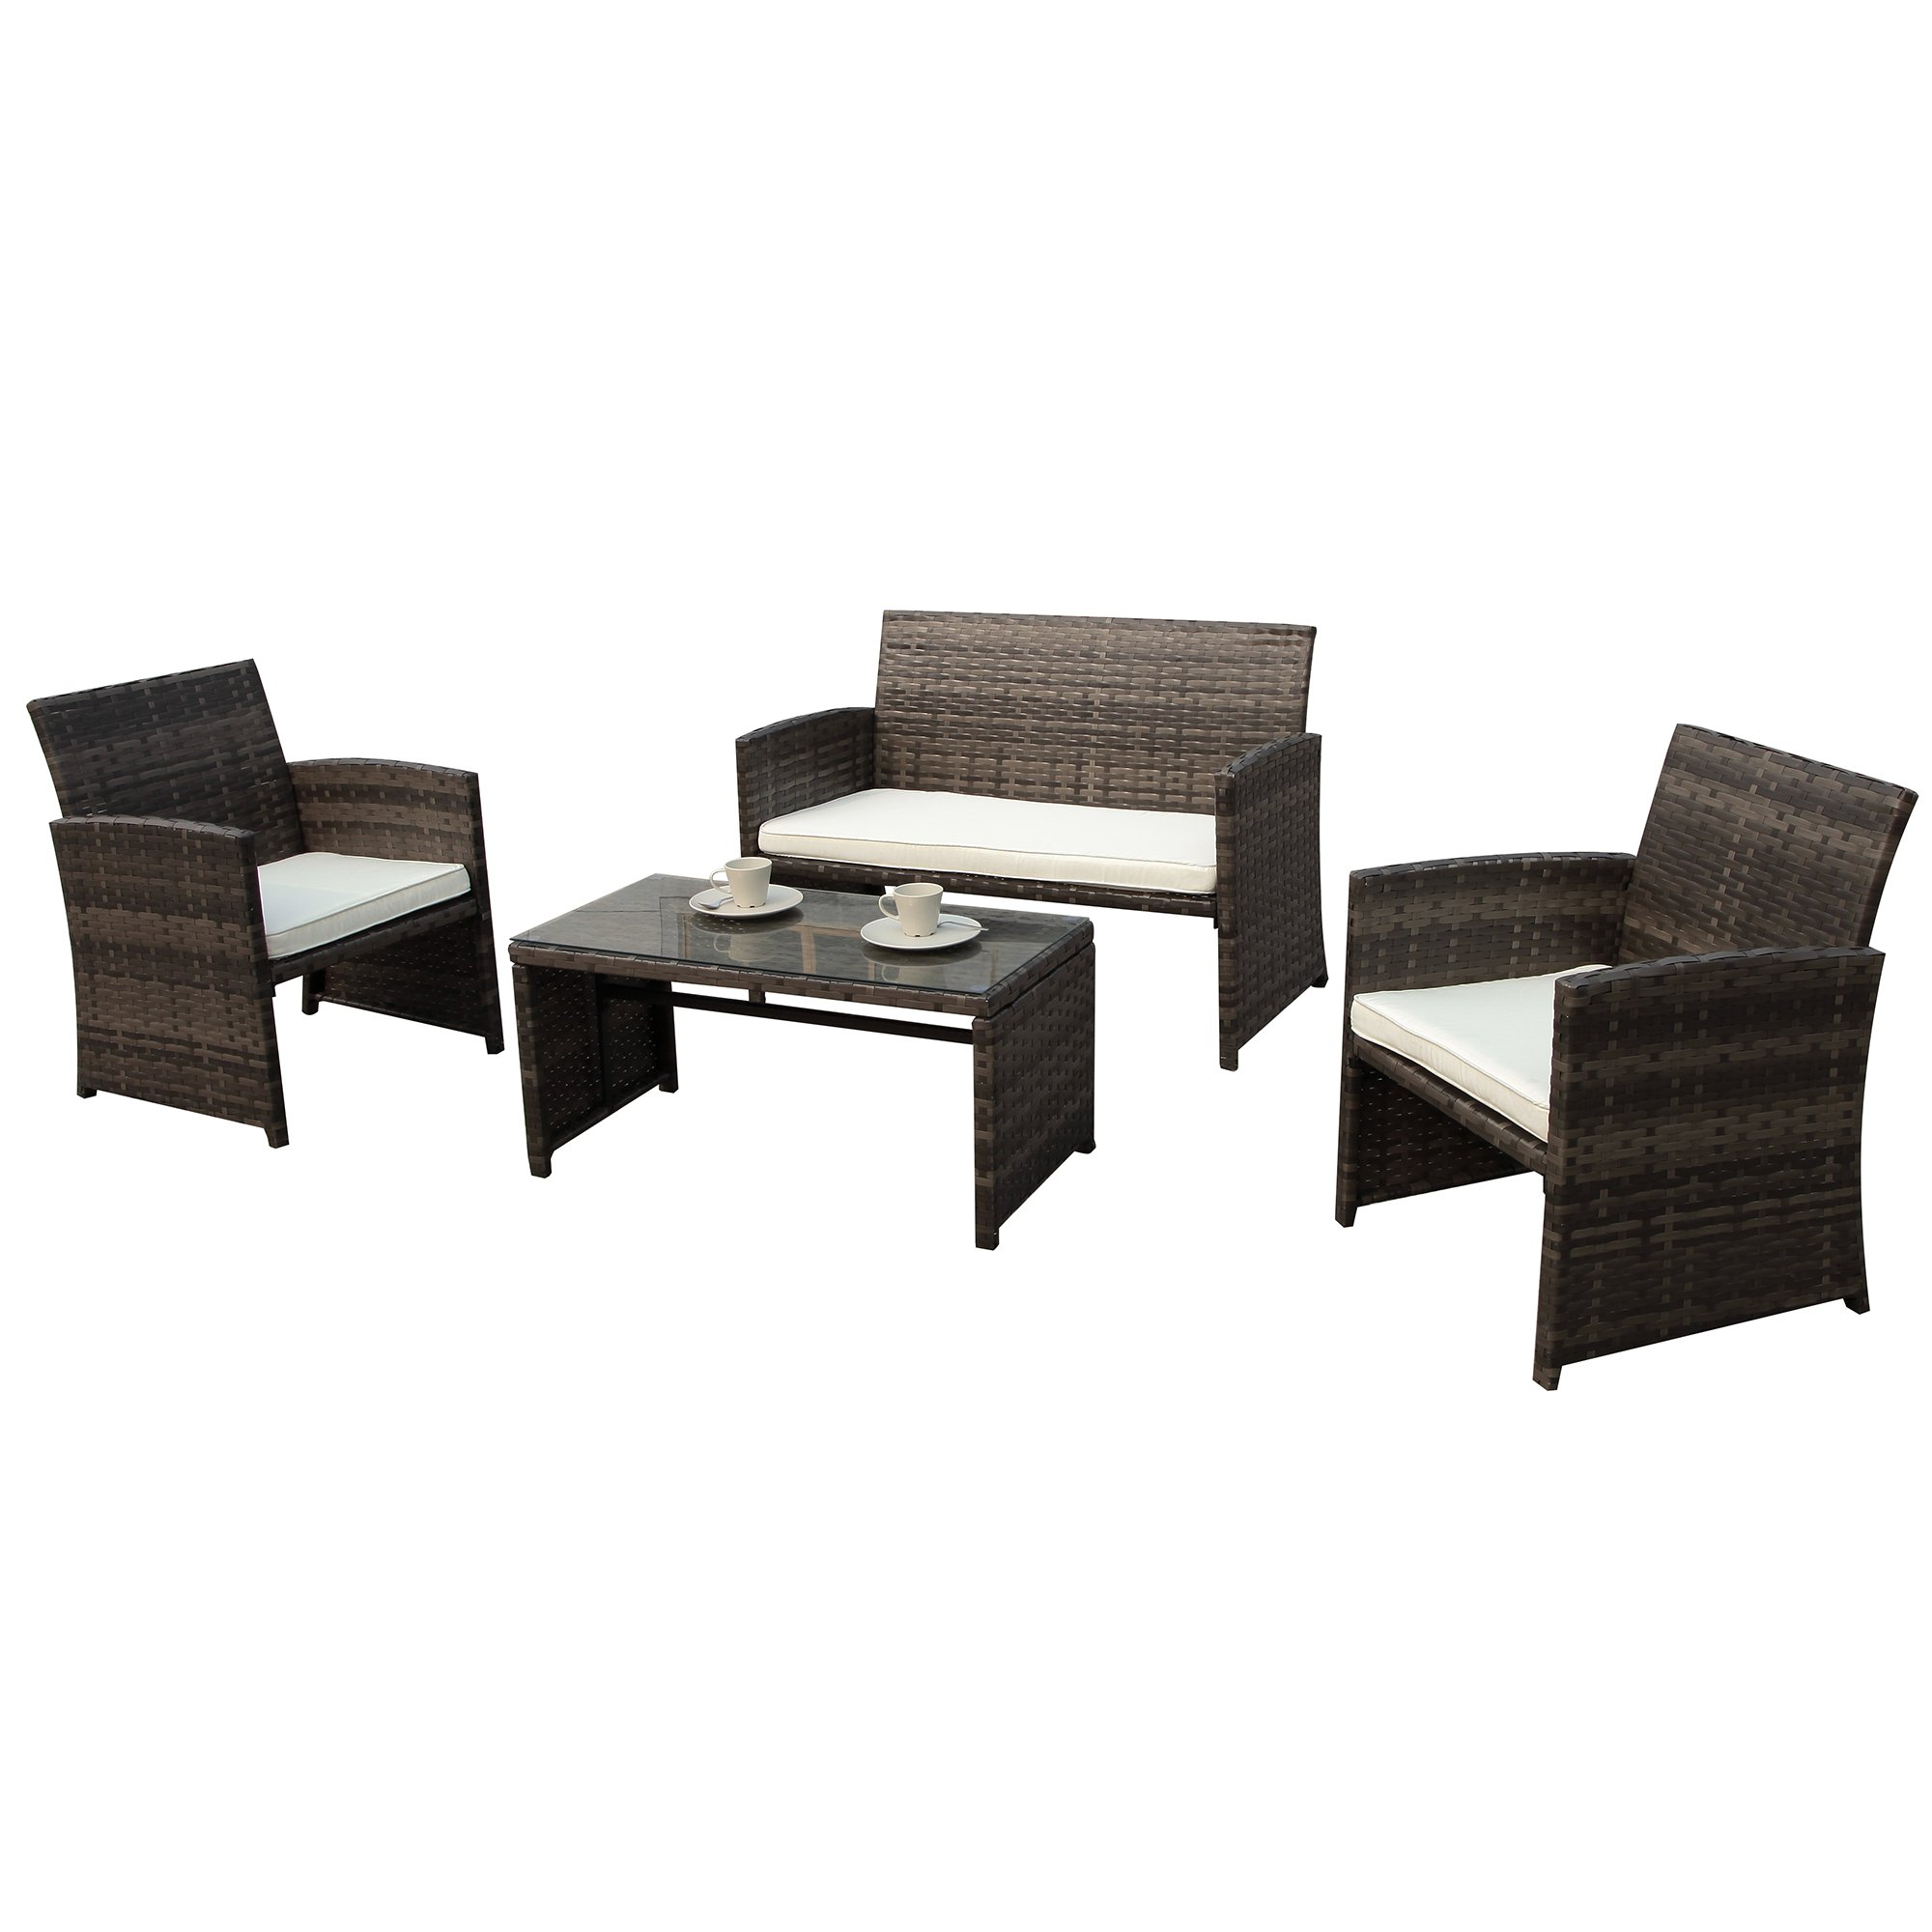 PATIOROMA 4pc Rattan Sectional Furniture Set with Cream White Seat Cushions, Outdoor PE Wicker, Gray